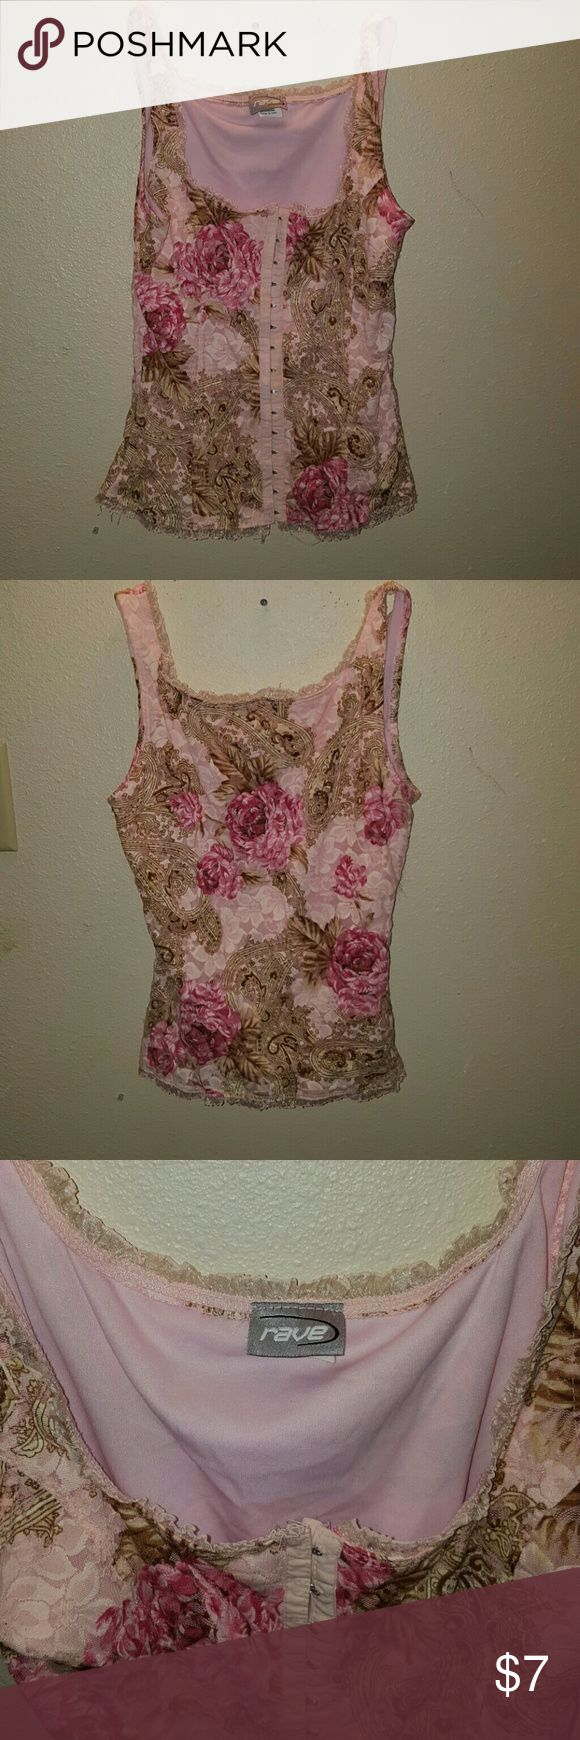 RAVE corset top This is a size medium  (fits like a small) pink floral corset top from RAVE. rave Tops